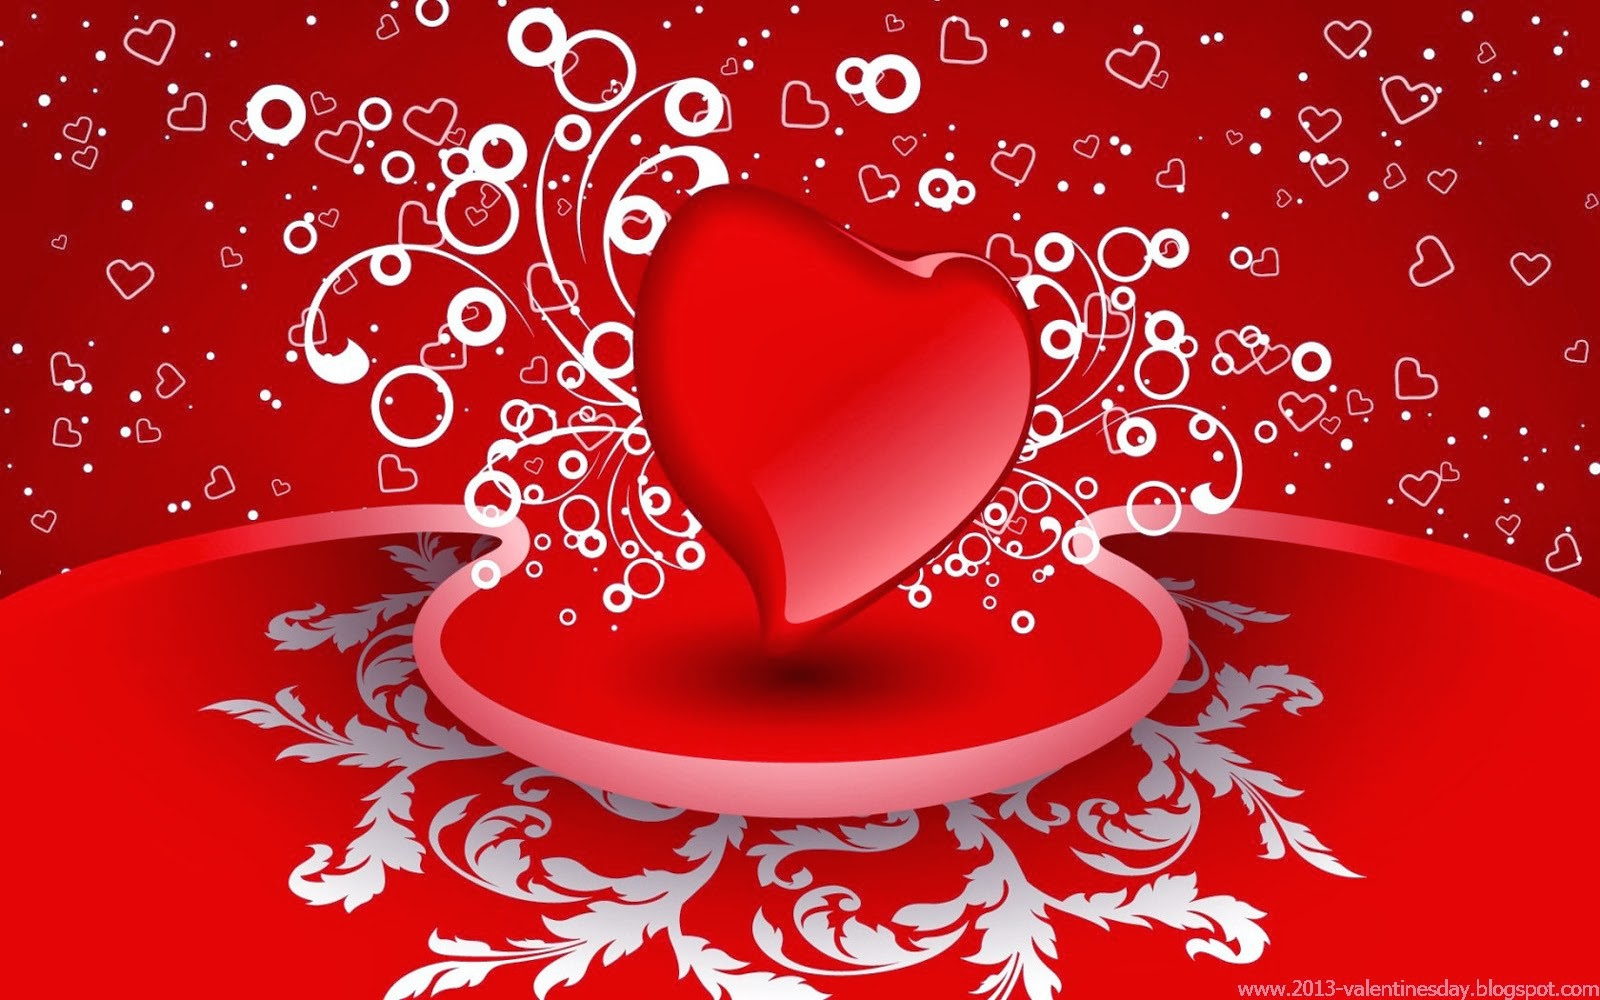 red-heart-romantic-valentine-wallpaper